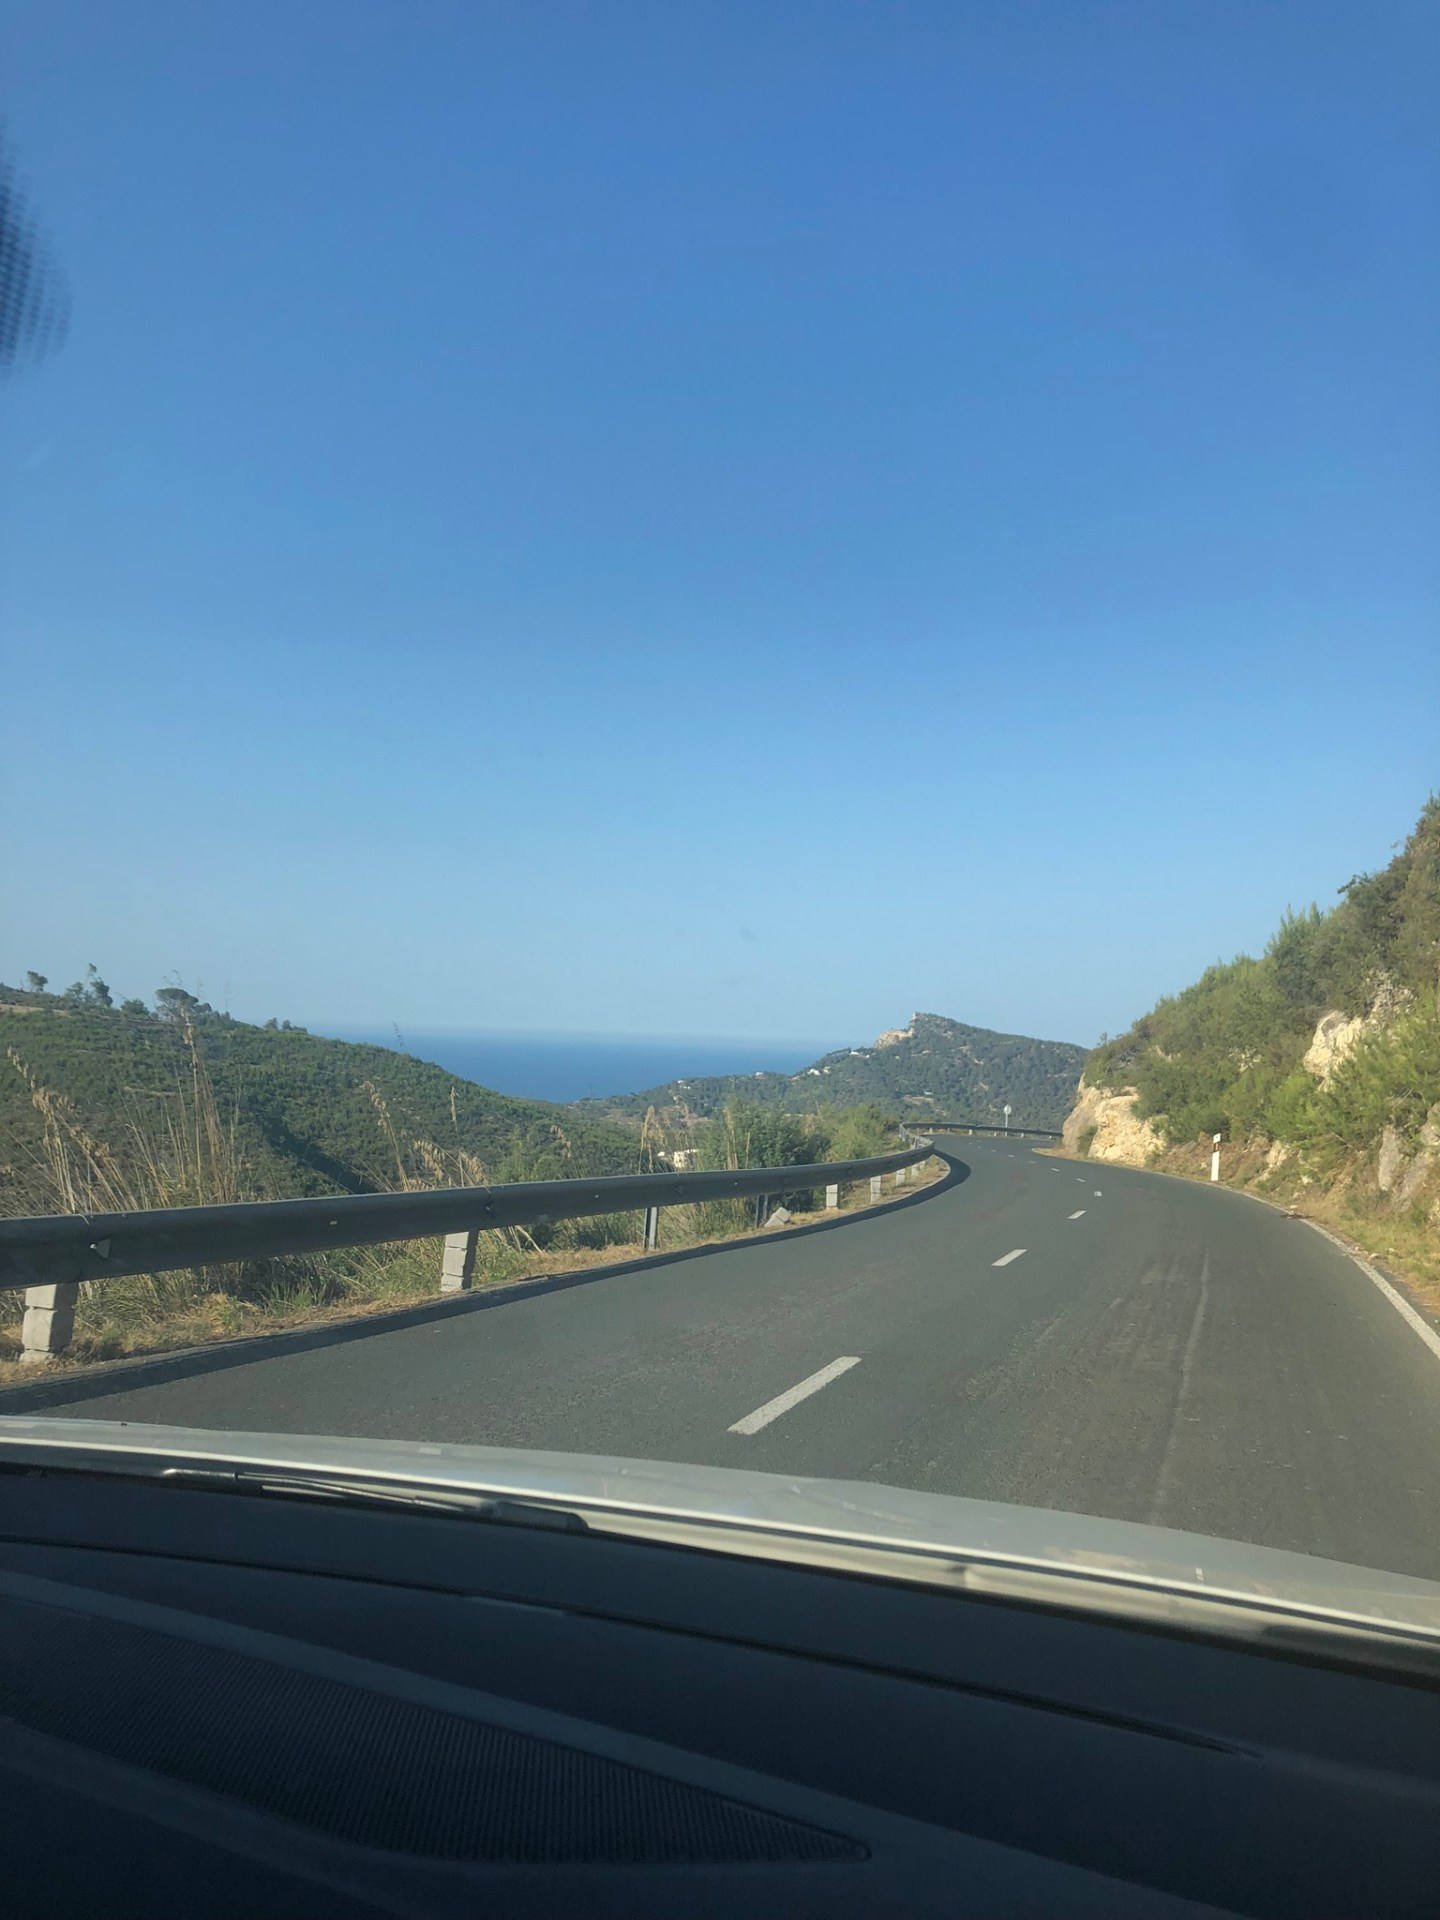 Best places to visit in Ibiza: Road to Cala de Sant Vincent, Ibiza